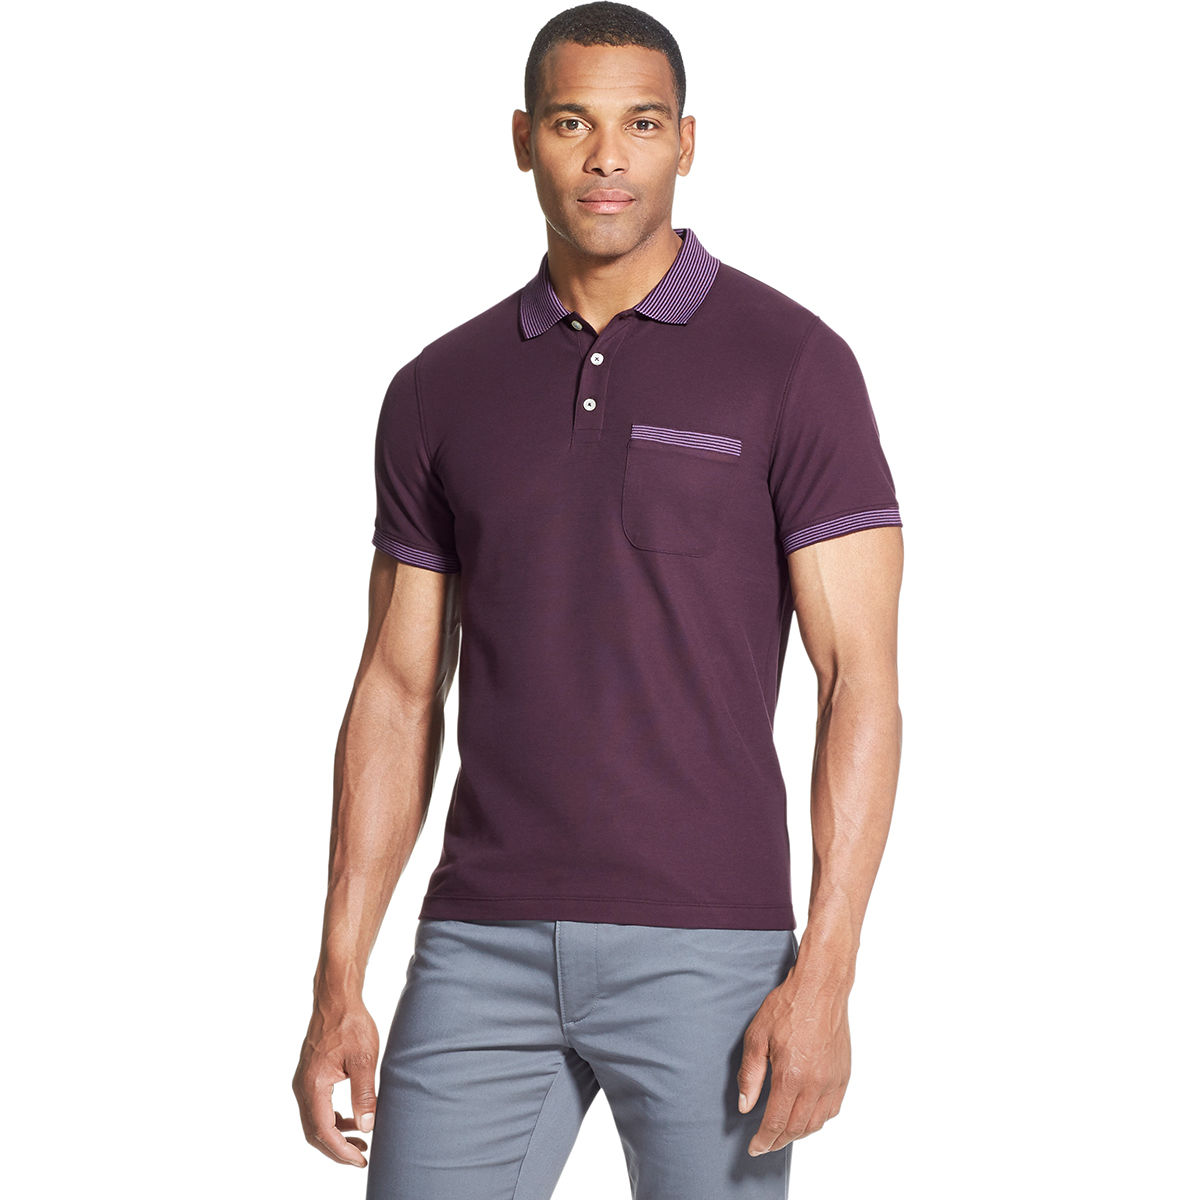 Van Heusen Men's Never Tuck Polo Shirt - Purple, L